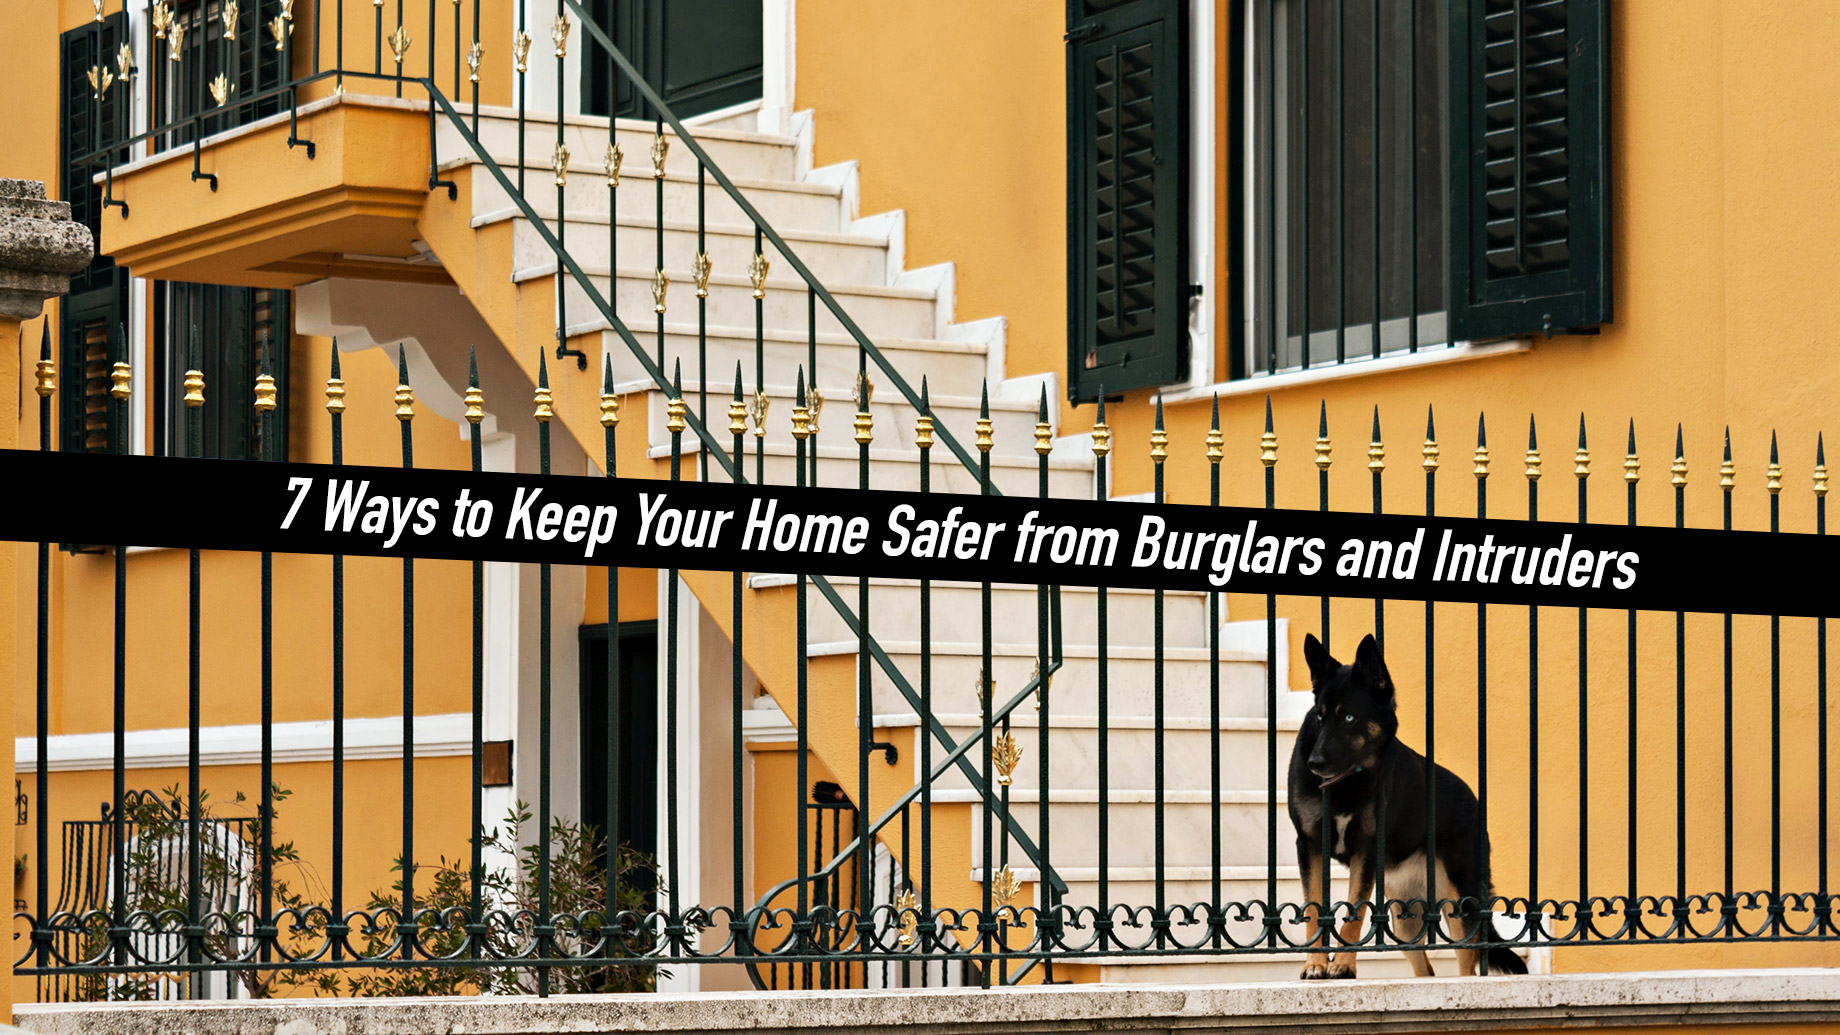 7 Ways to Keep Your Home Safer from Burglars and Intruders